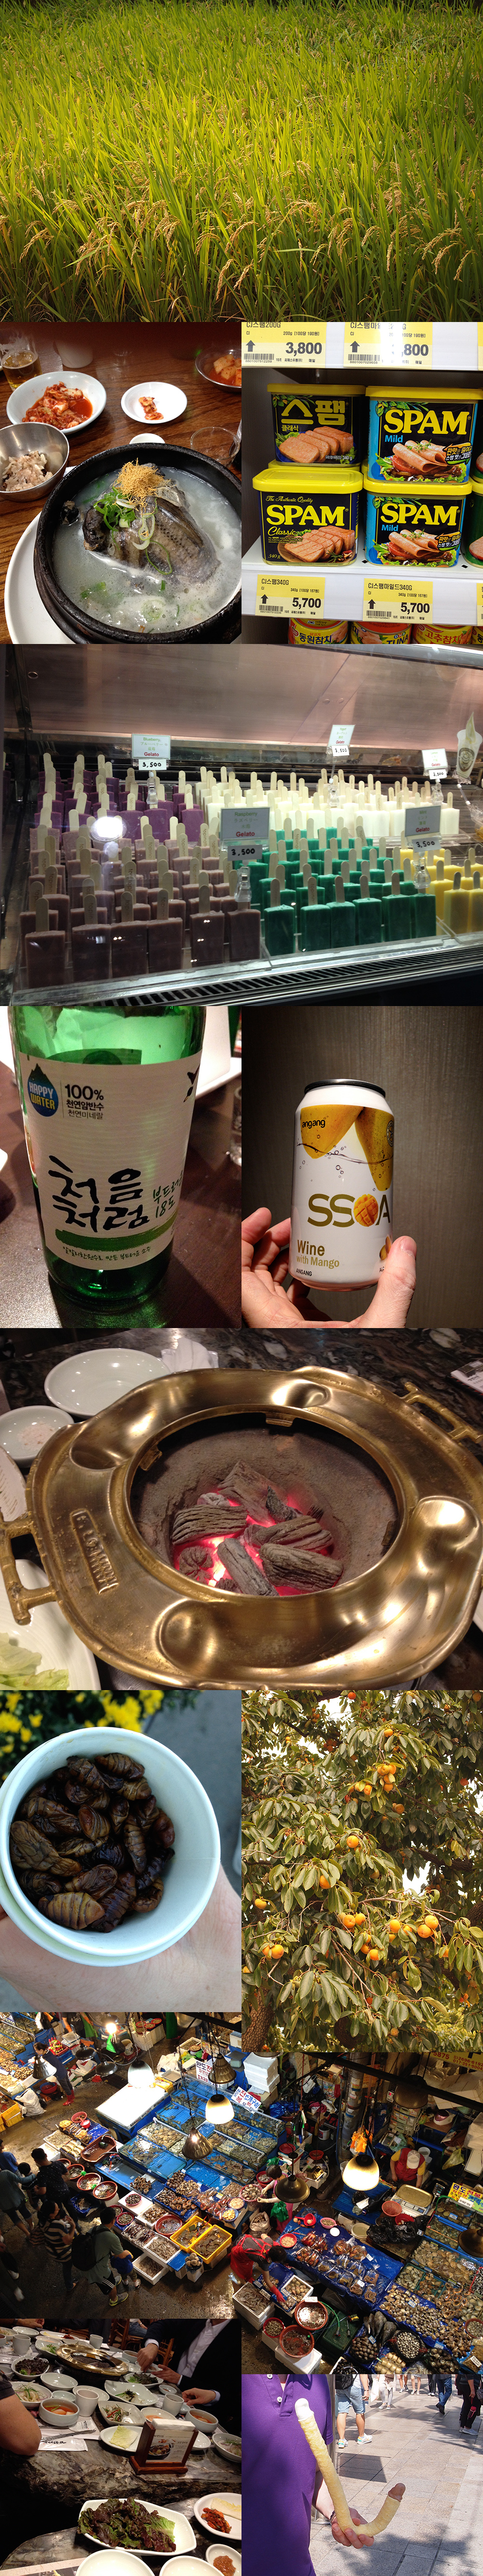 "Eat & drink in Korea - from top to bottom, left to right: rice, chicken hangover soup with black chicken and wild ginseng (kimchi - see top left image corner), ""spam"" (canned ham), ice cream in weird colors on sticks, Soju (national drink No.1, a kind of light vodka-y beverage - I like the fact they label it ""Happy Water"" ;-)), wine with mango (Asia is not really good with wines, no sir!), table coal bbq, silkworm larvae (yumyum), persimon, all kinds of sea monsters at Noryangjin fish market, table bbq with endless amounts of dishes in bowls, and finally: the mysterious double-ended whale-penis icecream :-D"